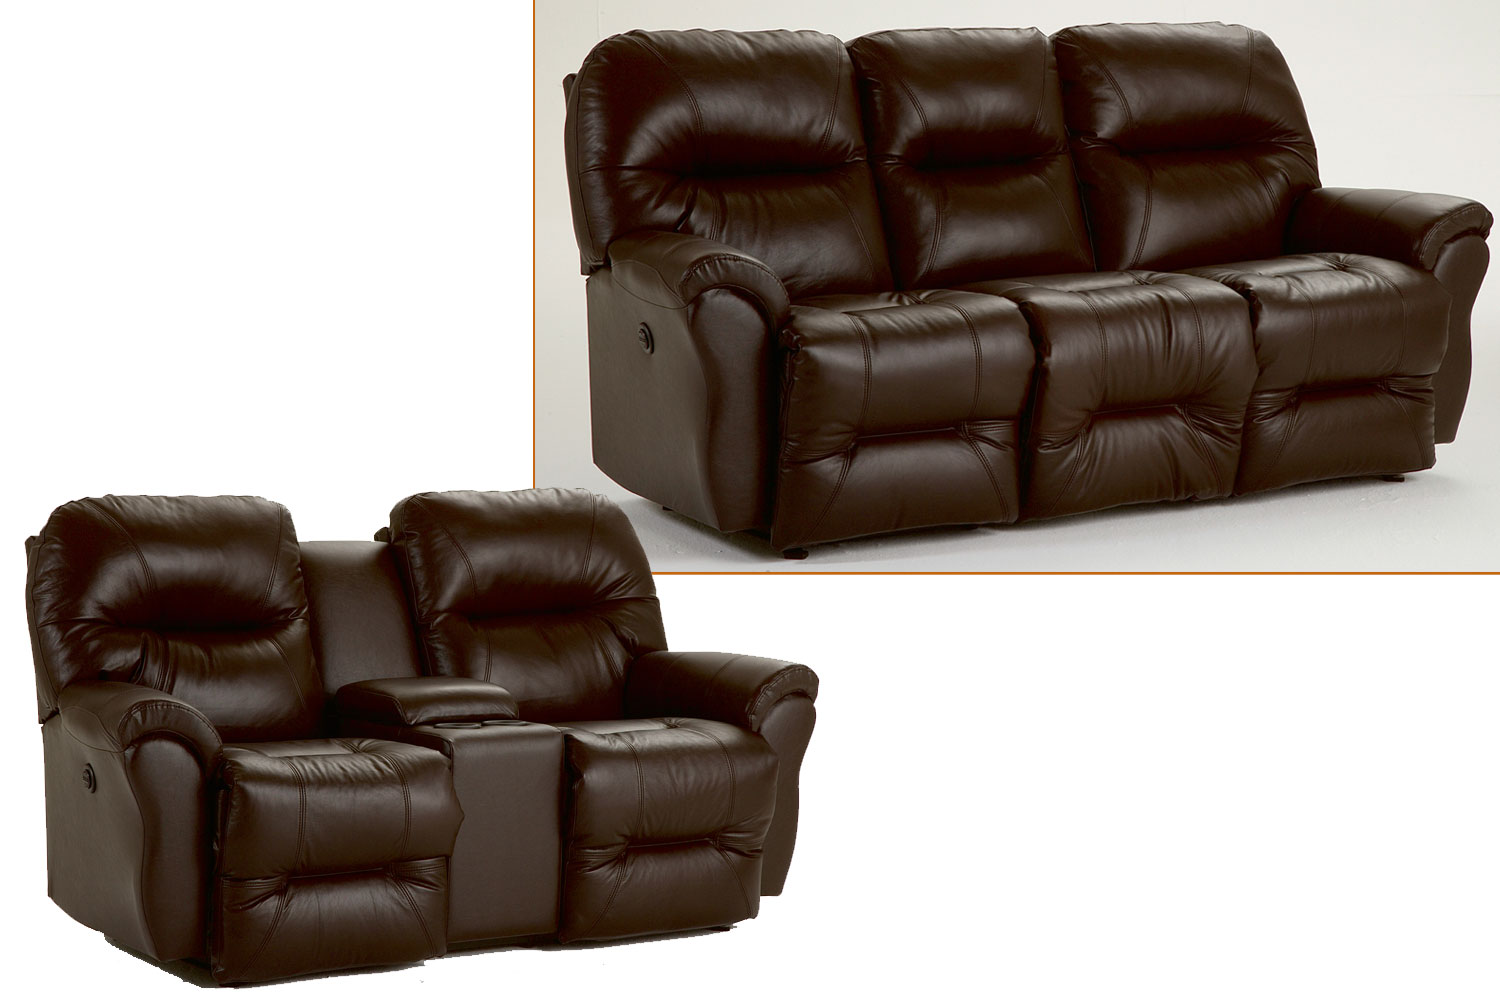 Recliner sofa clipart 20 free Cliparts  Download images